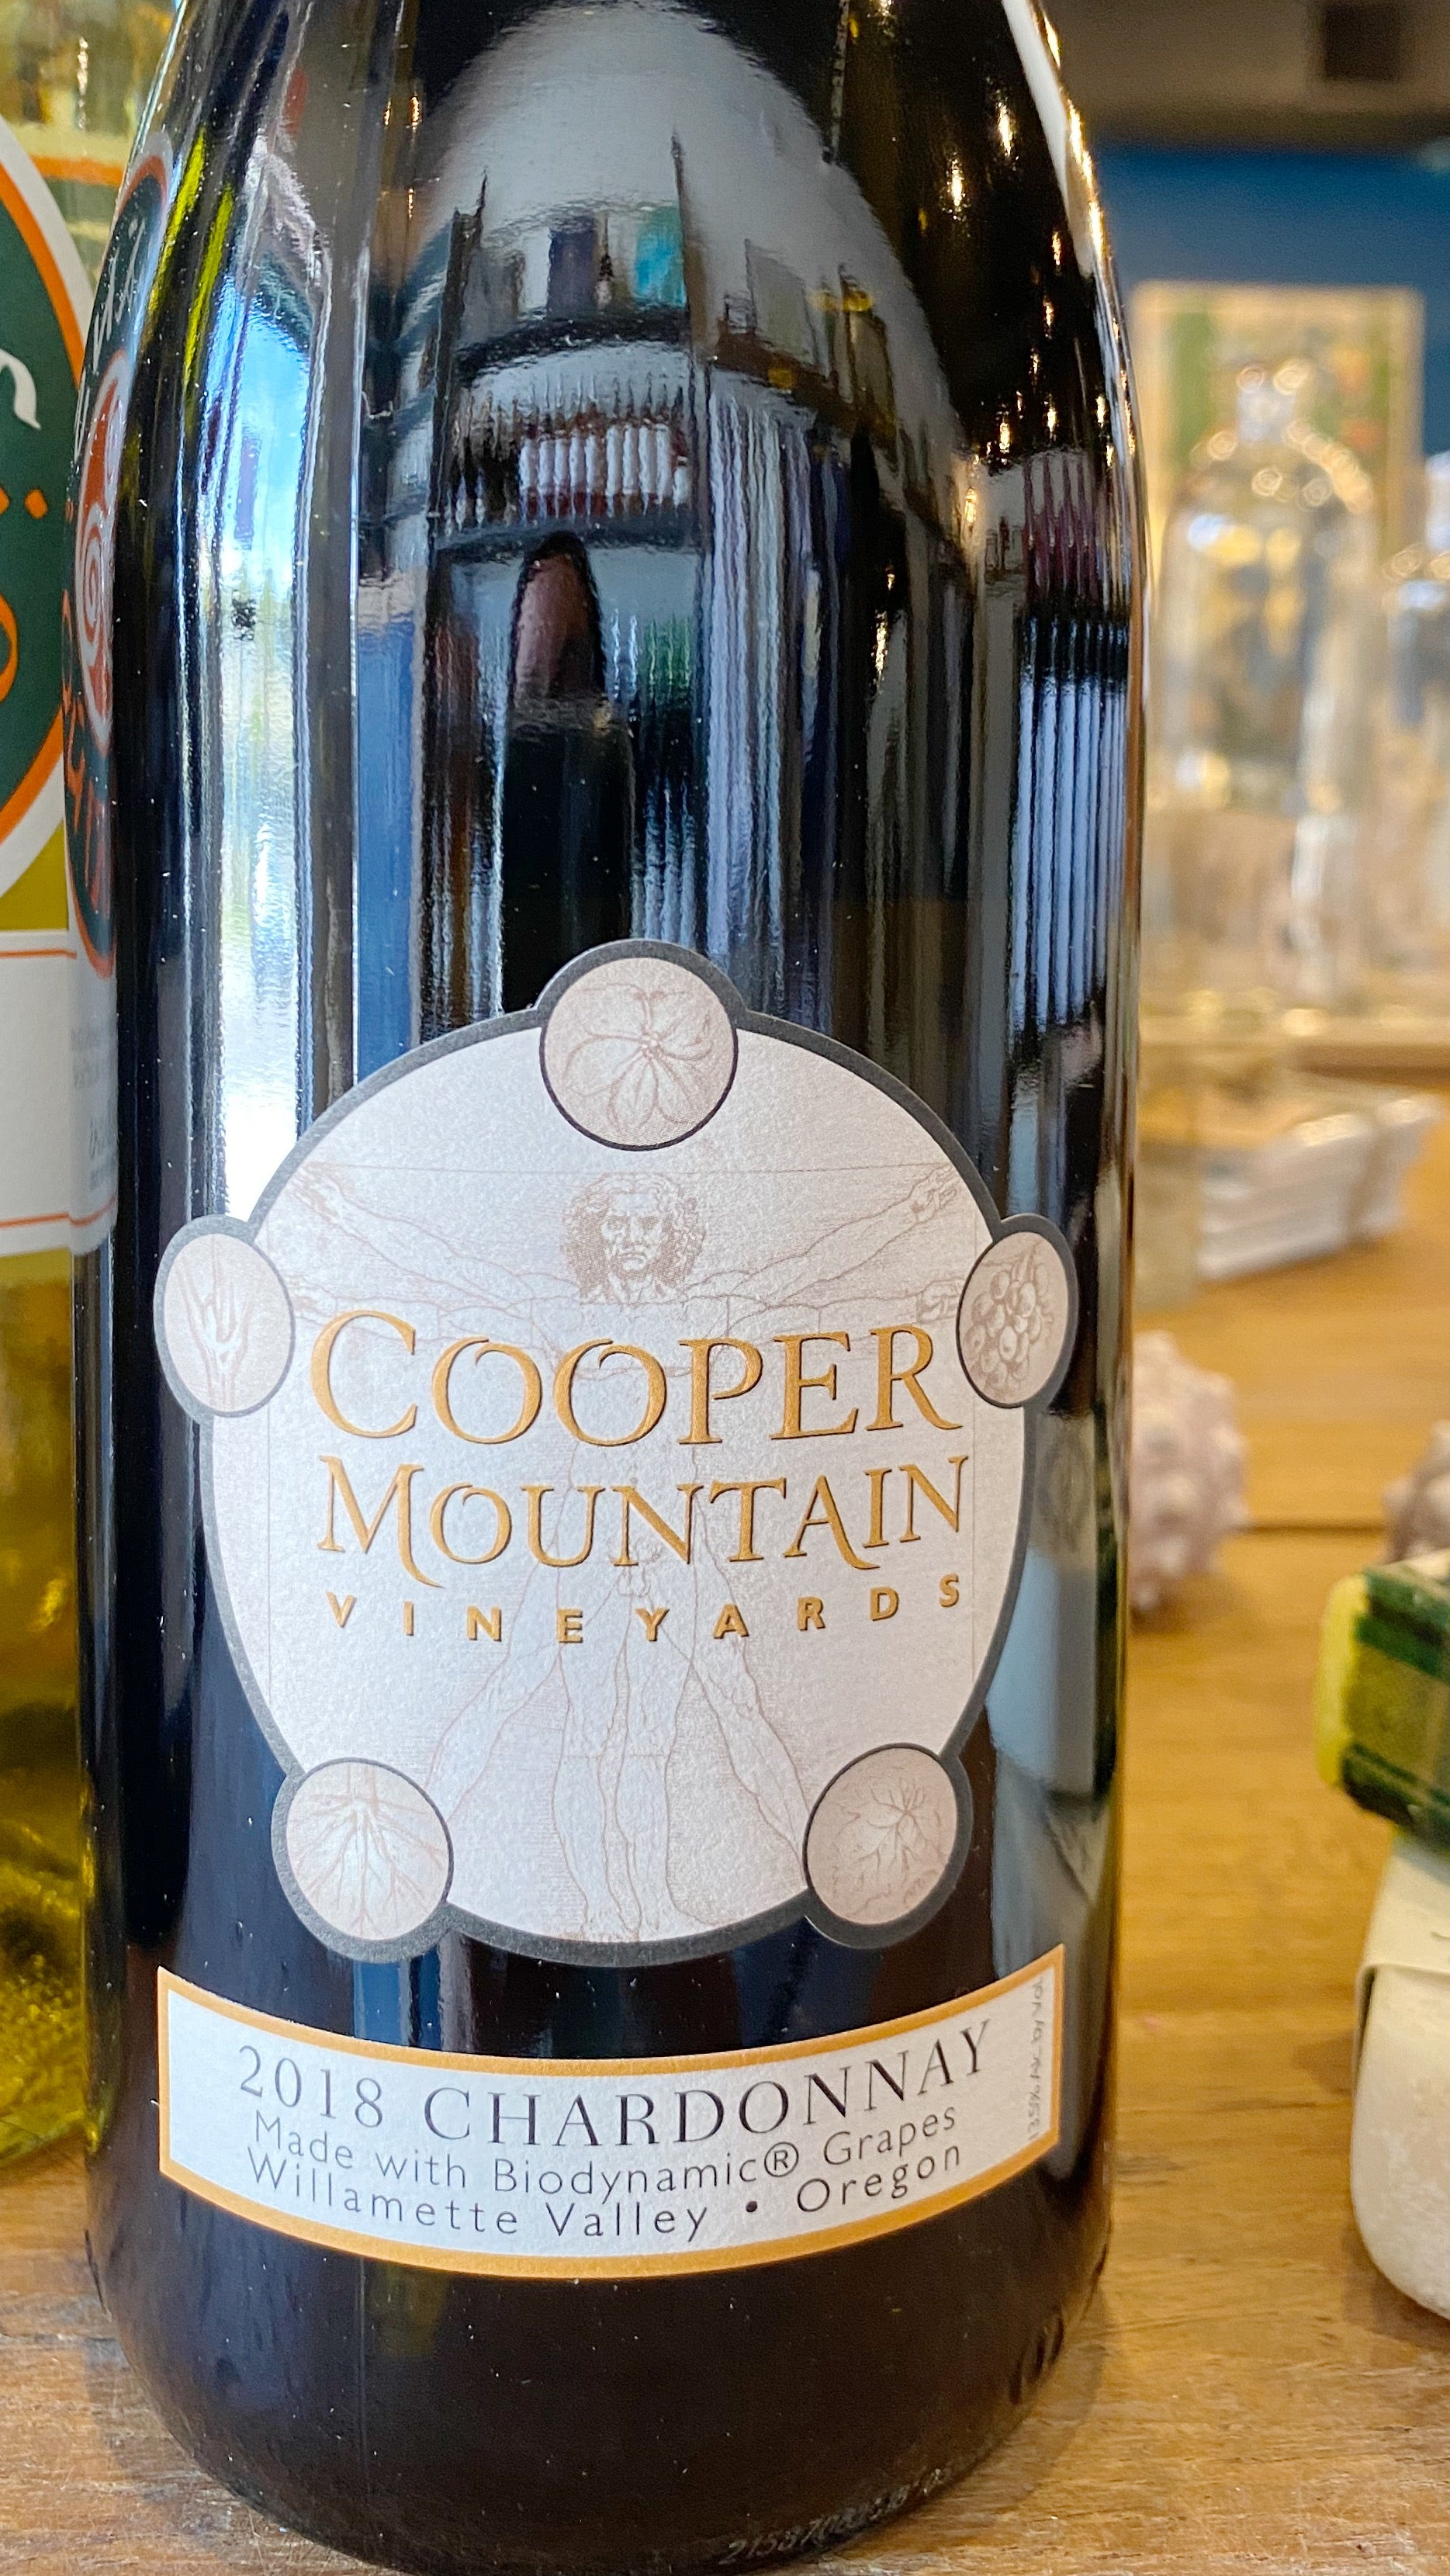 Cooper Mountain Vineyards 2018 Chardonnay Willamette Valley